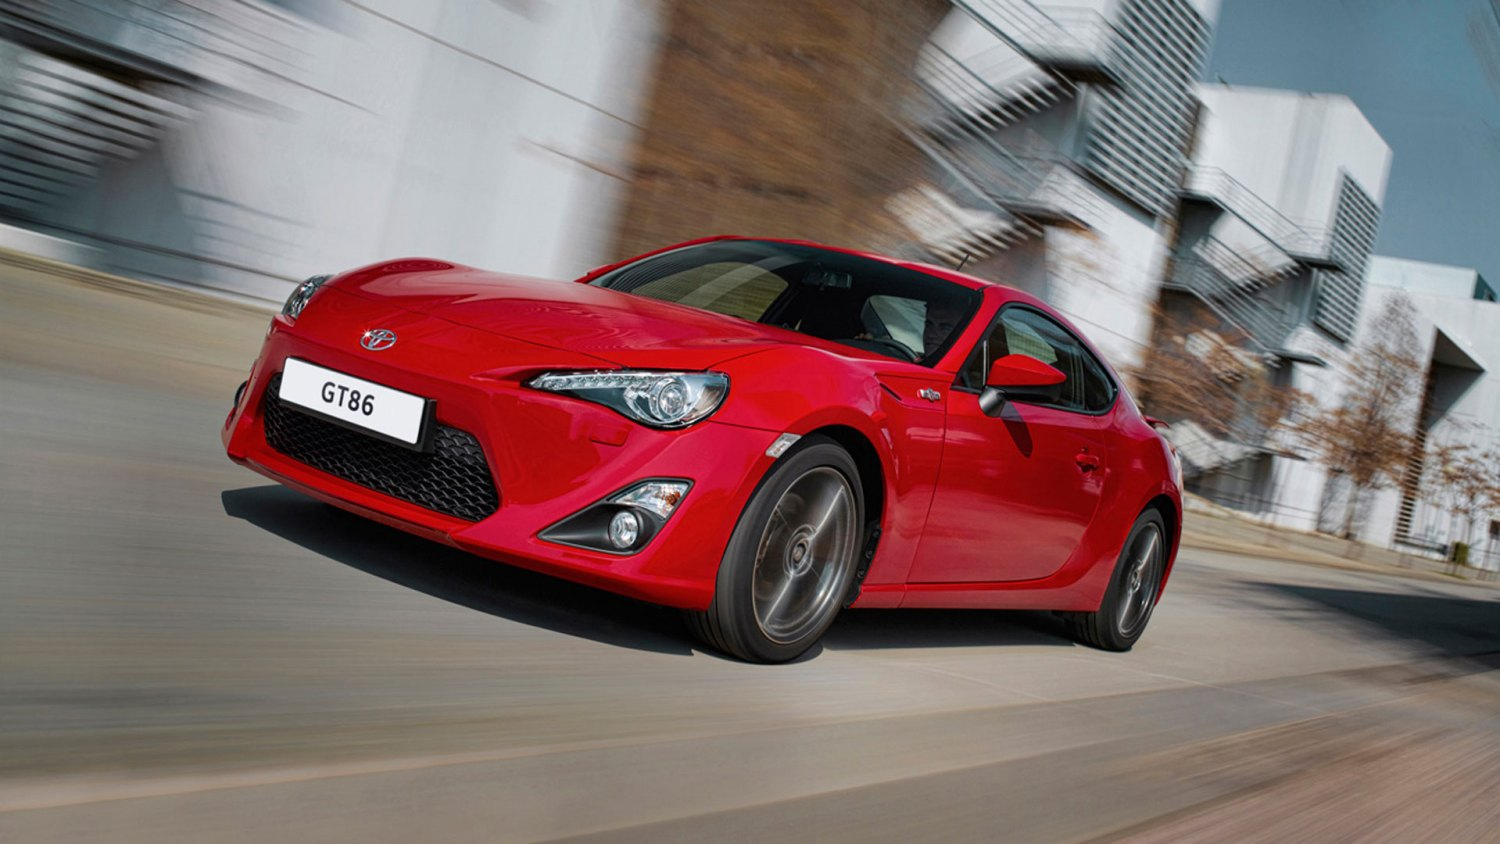 Toyota GT86 - greatest cars of the decade